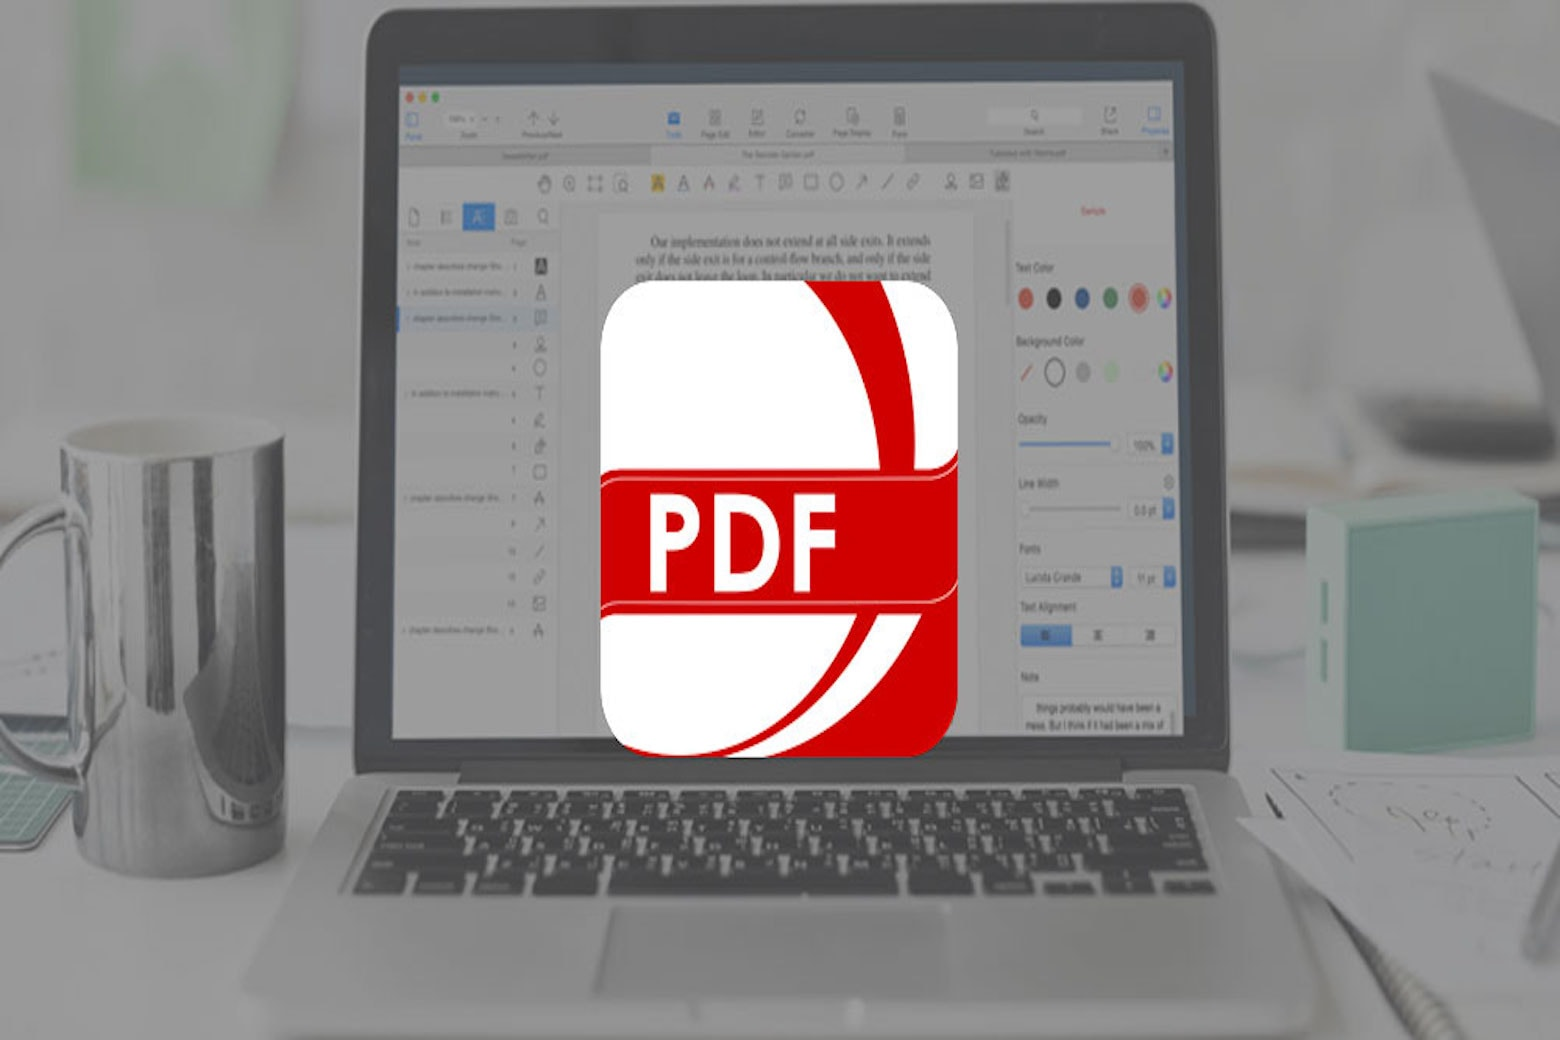 Up your Mac's document editing skills with this top-rated PDF editor, now 33% off